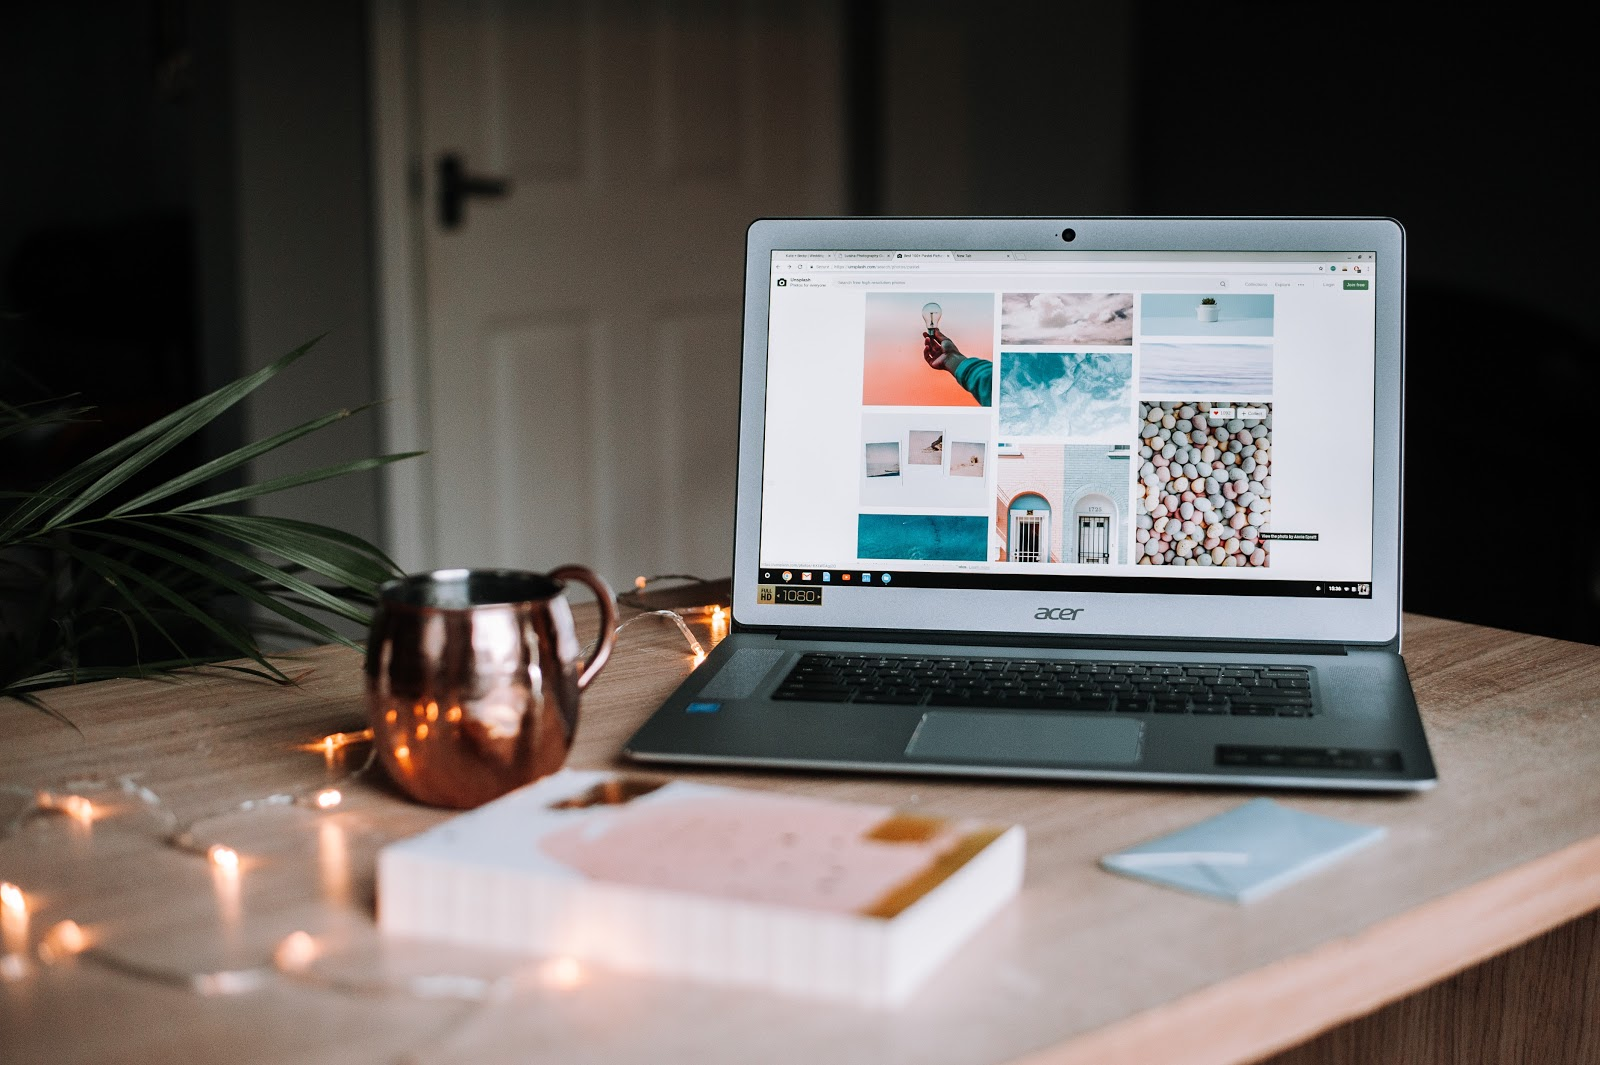 laptop on desk coffee mug brands look for in influencers